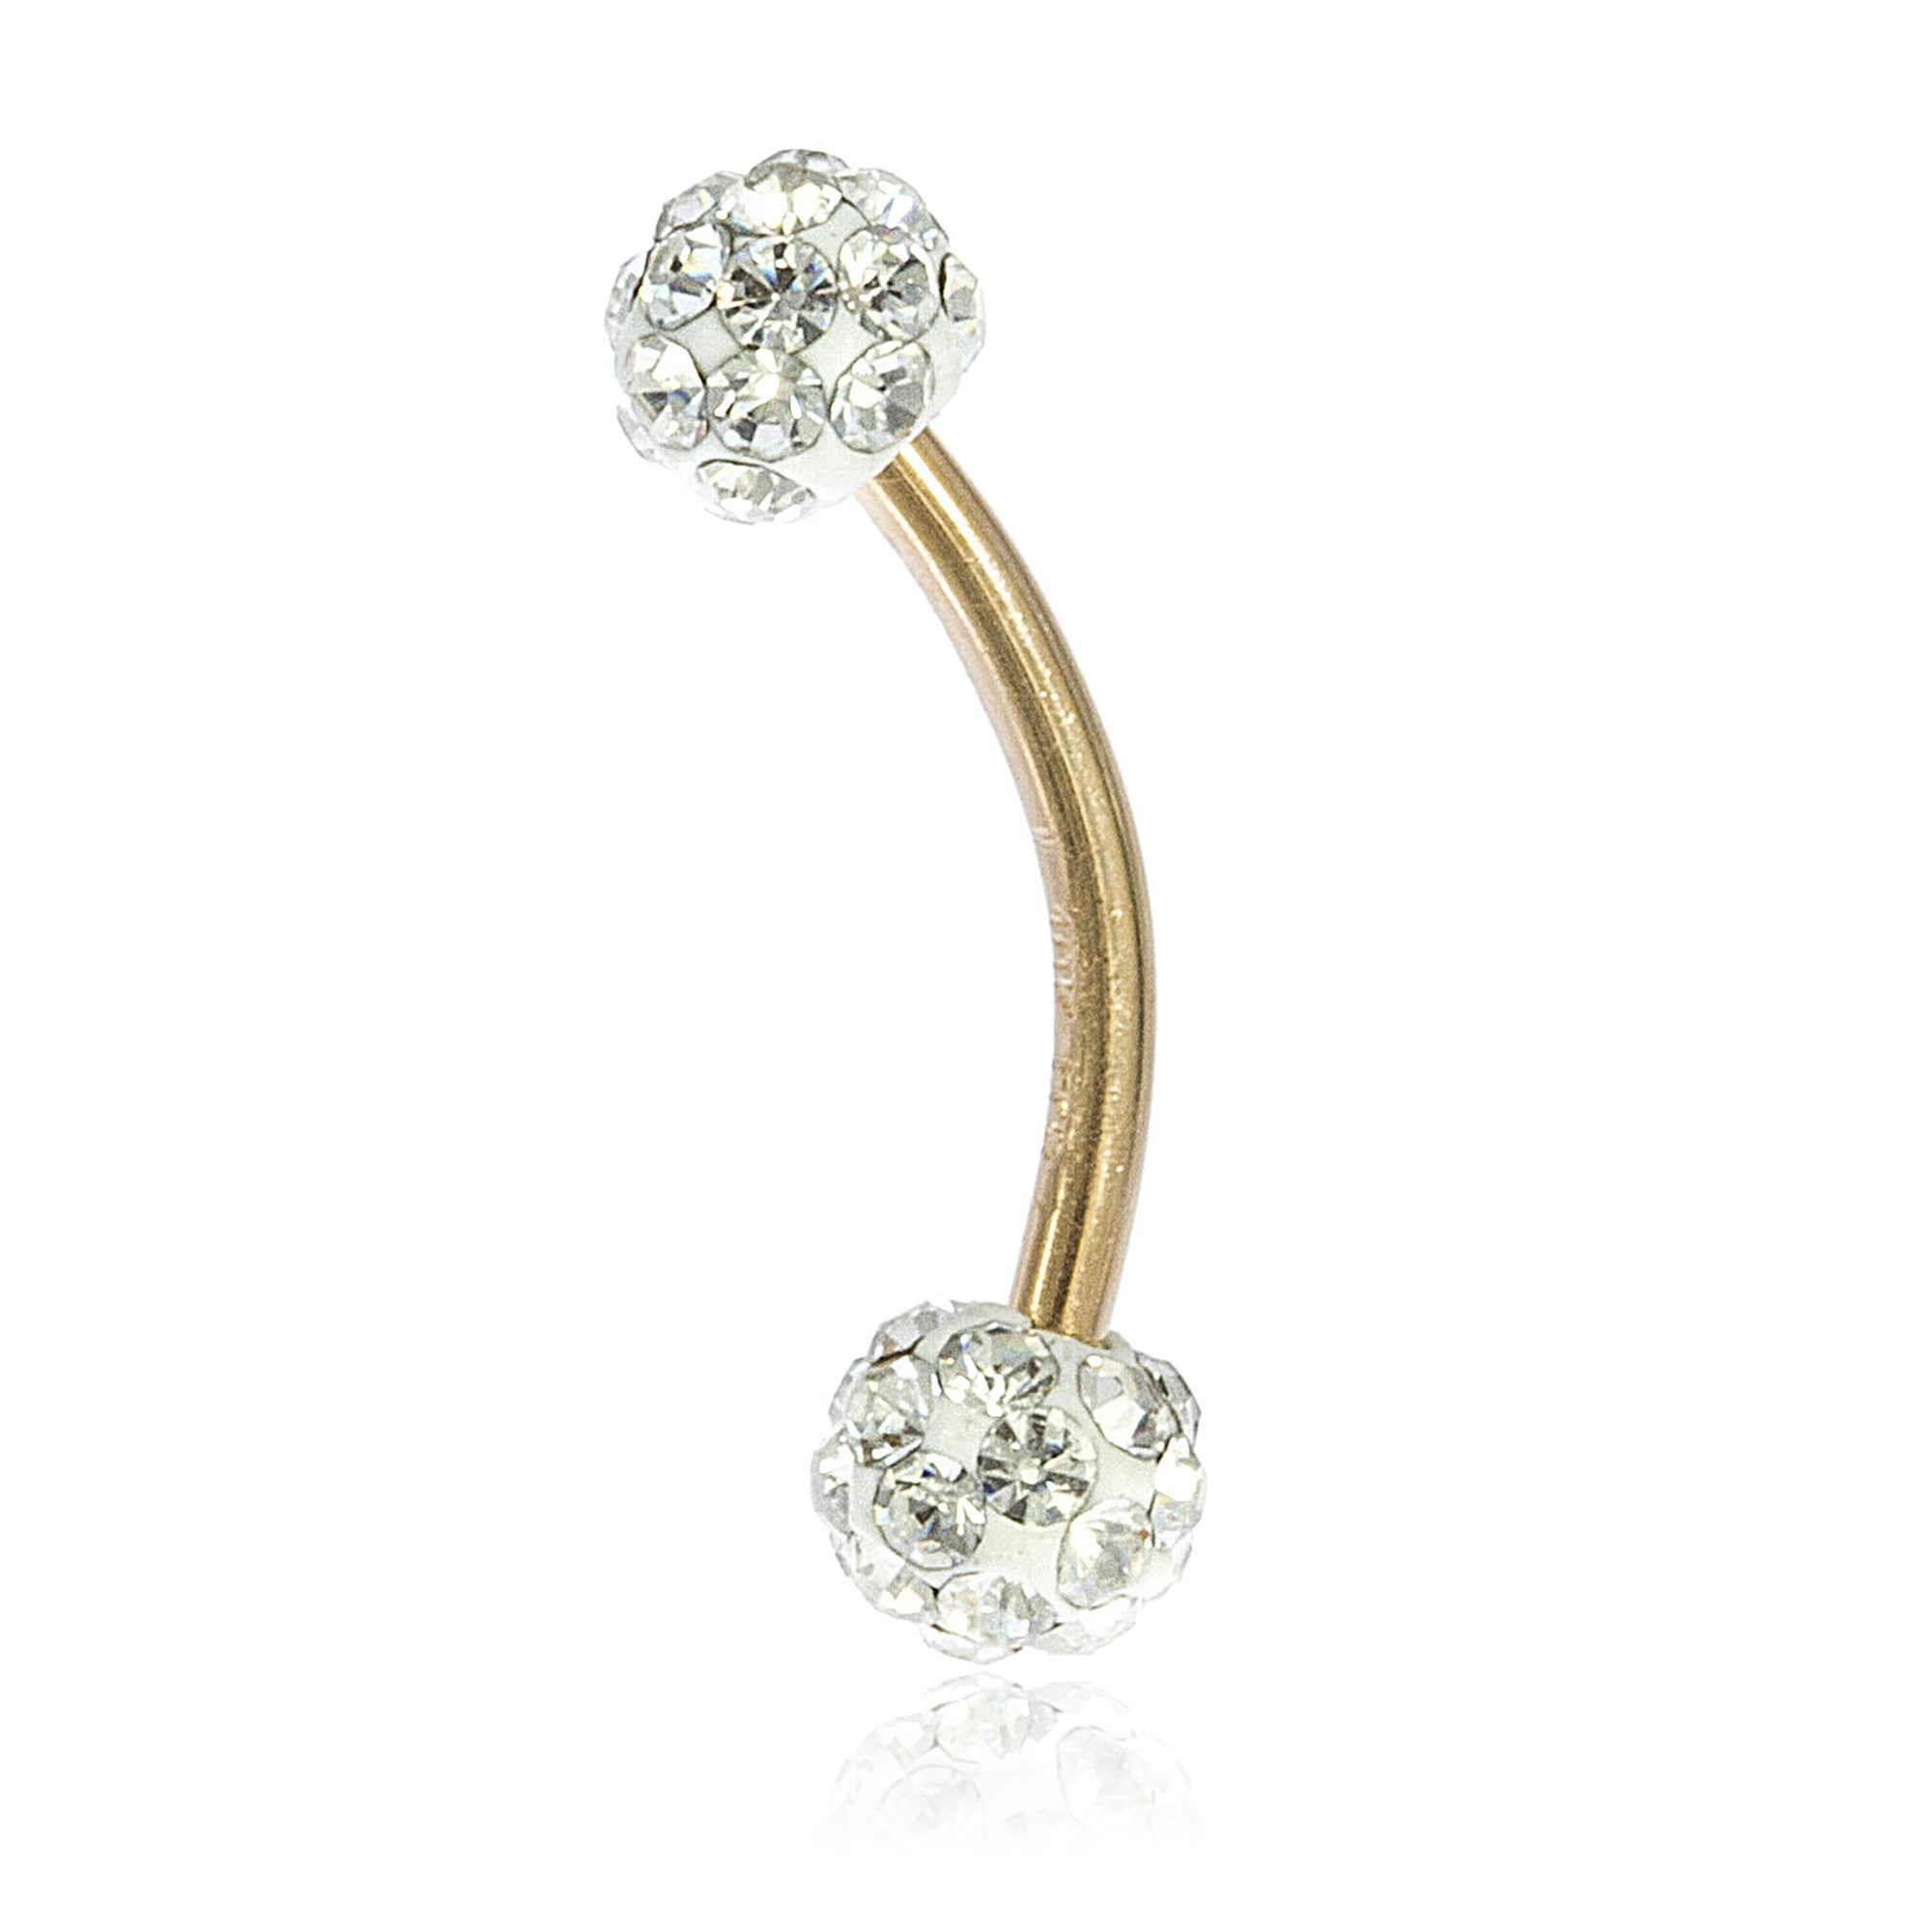 10k Yellow Gold 12 Gauge Eyebrow Ring with White 4mm Preciosa Crystals Balls (GO-682)